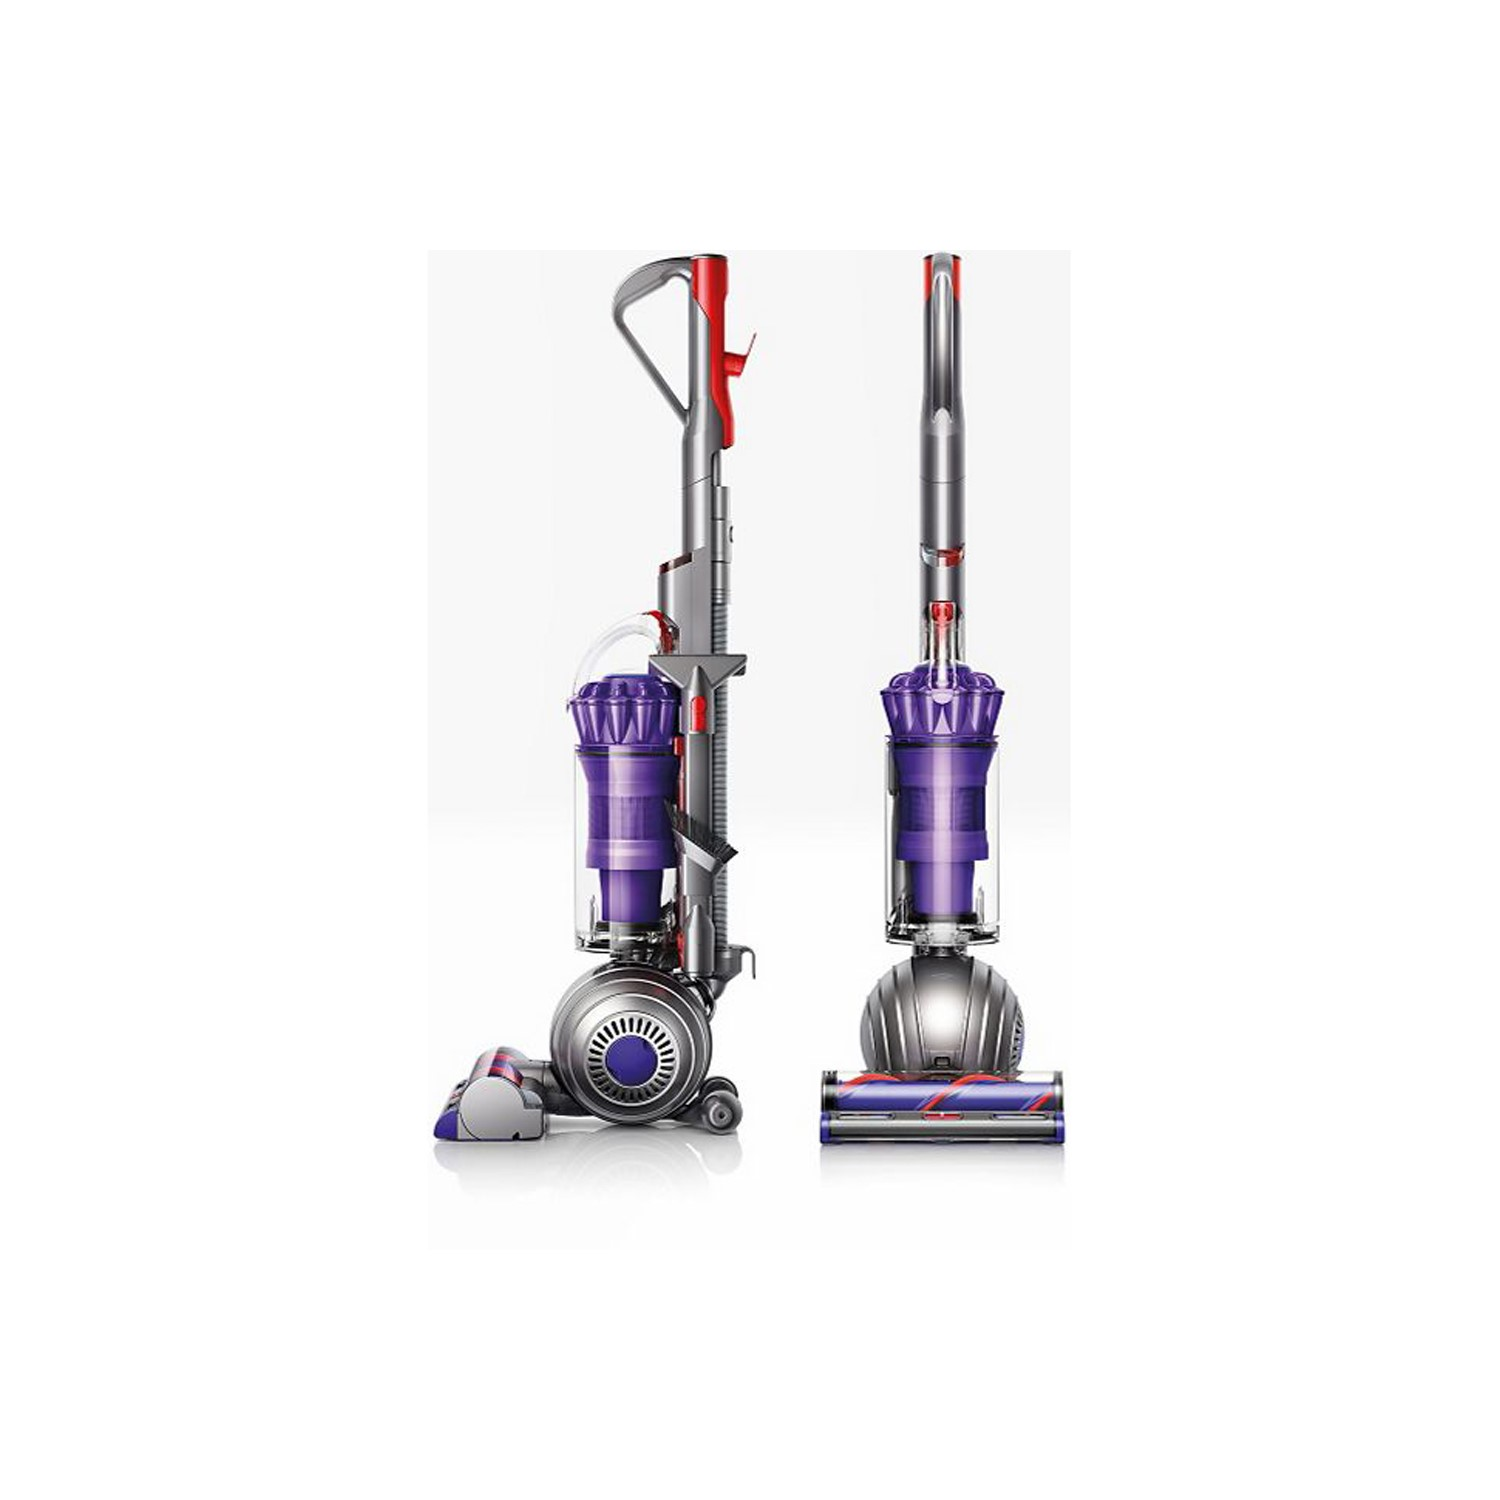 Dyson Light Ball Animal Upright Vacuum Cleaner - Grey And Purple